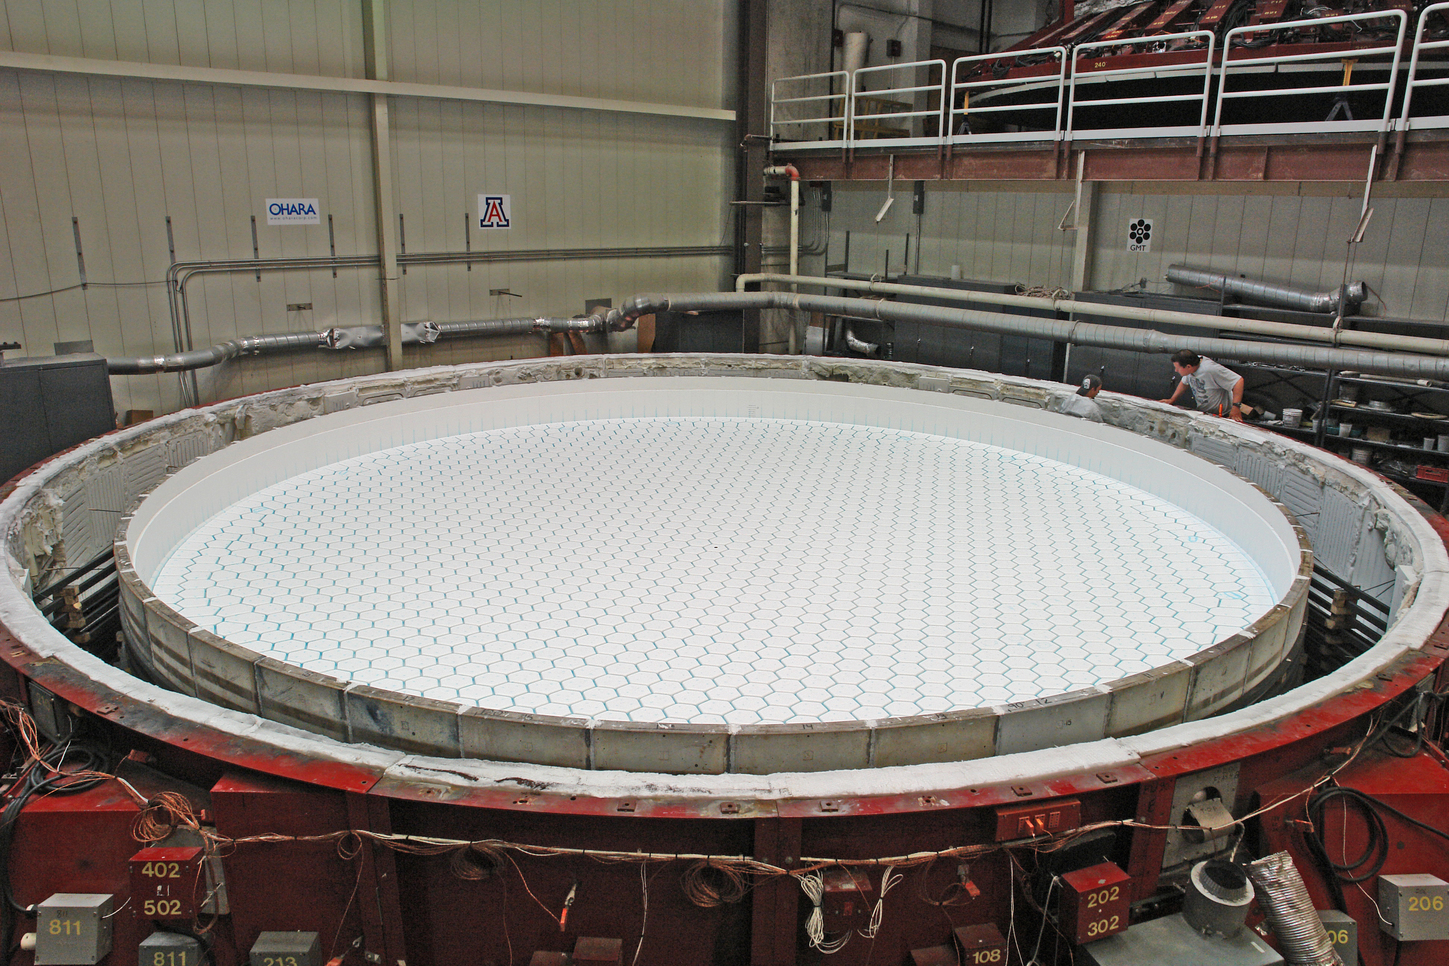 Mold for casting an 8.4-meter honeycomb mirror for the GMT. The glass will melt around the hexagonal boxes to form the honeycomb.